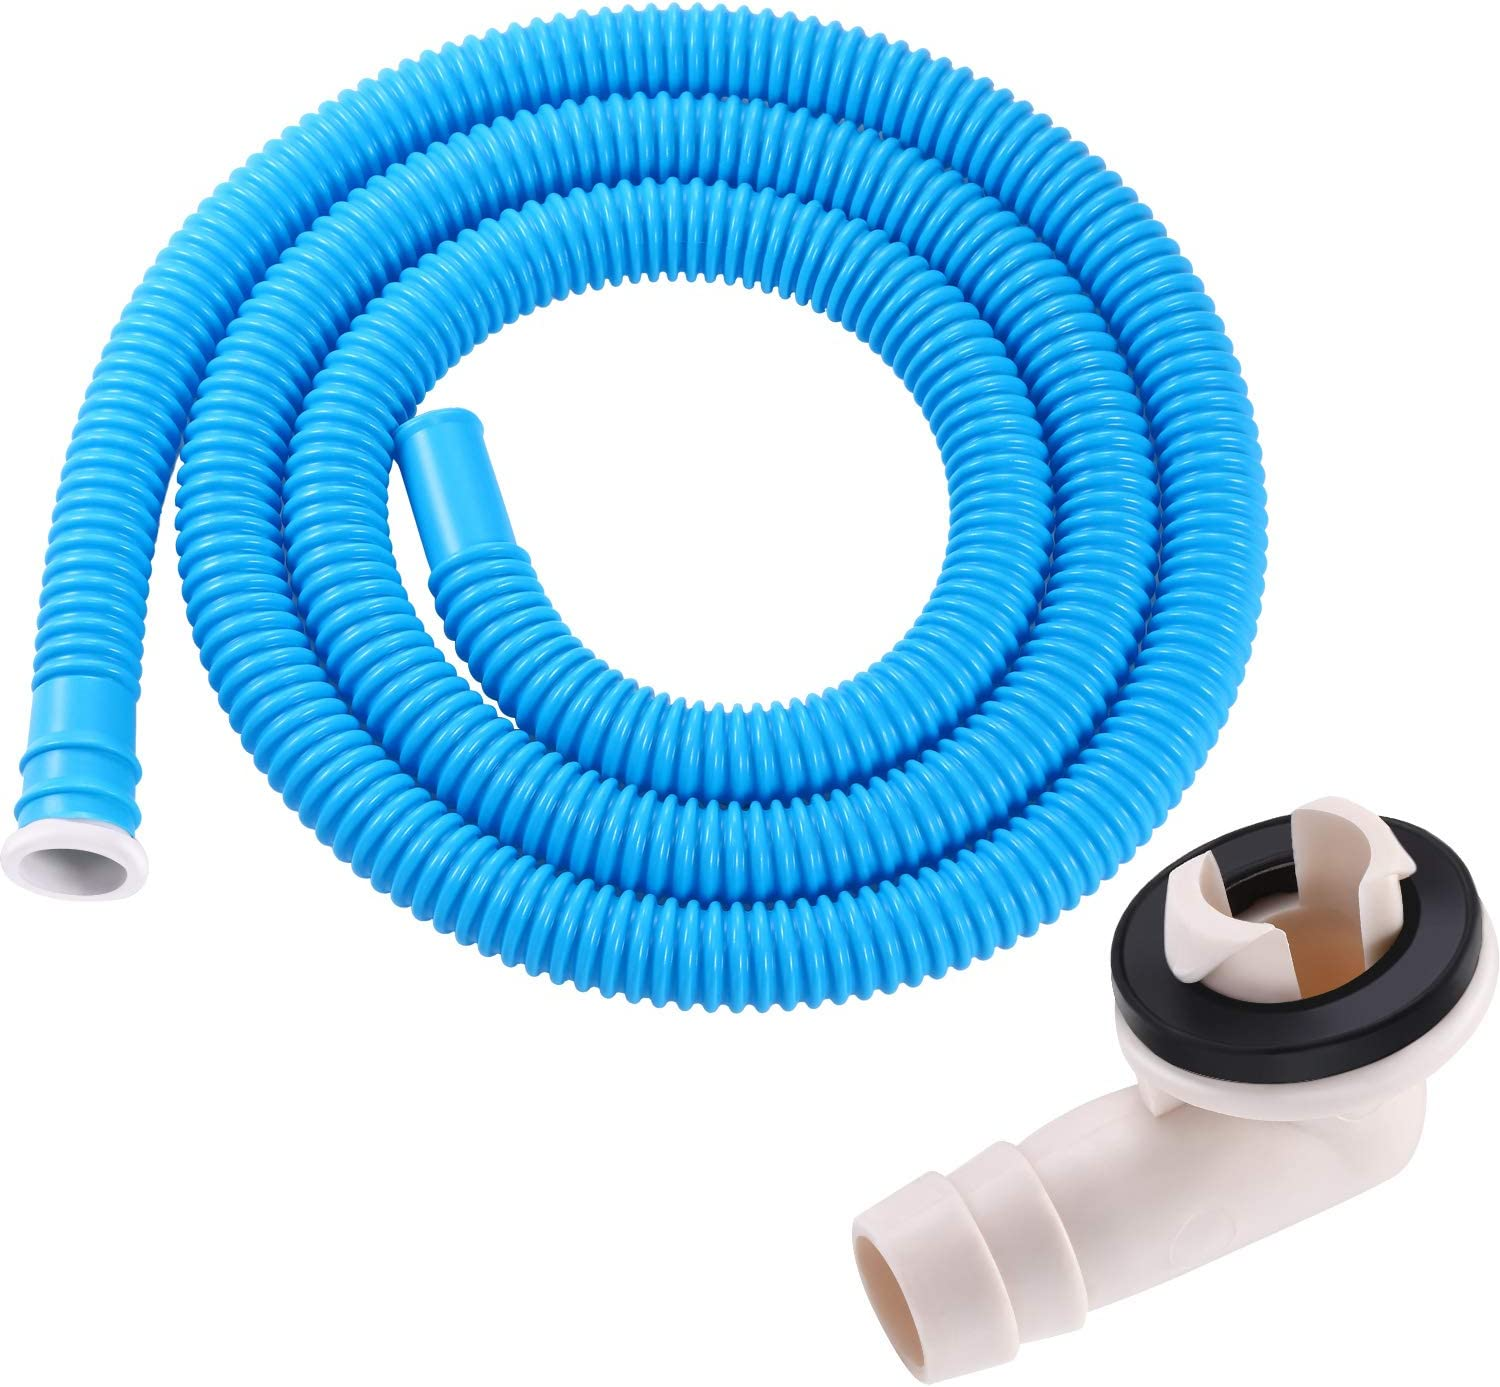 BBTO 3/5 Inch AC Drain Hose Connector Elbow Fitting with Rubber Ring for Mini-Split Units and Window AC Unit and Air Conditioner Drain Hose with 5.2 Feet Long